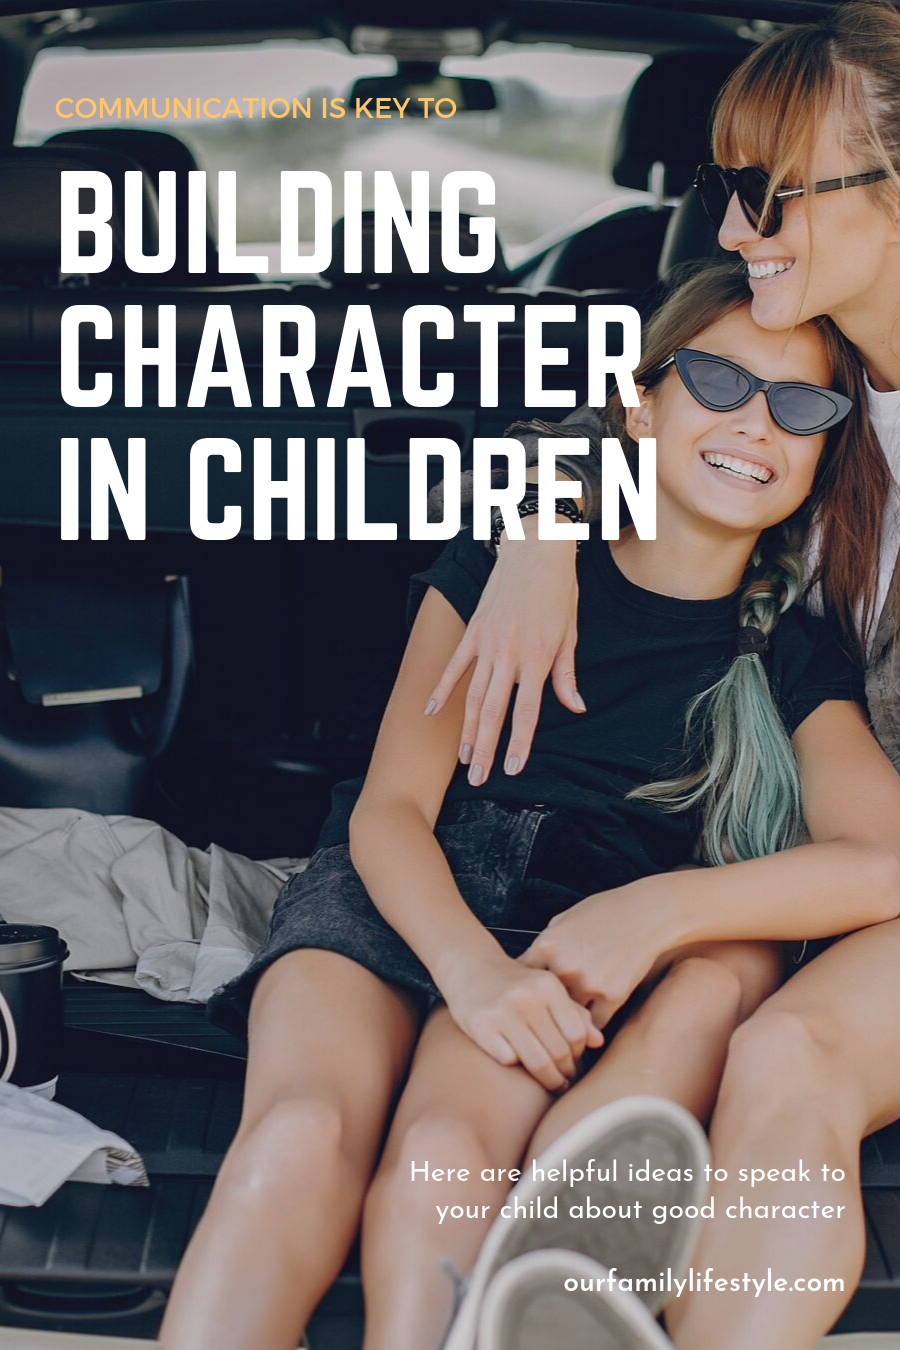 Communication is Key to Building Character in Children